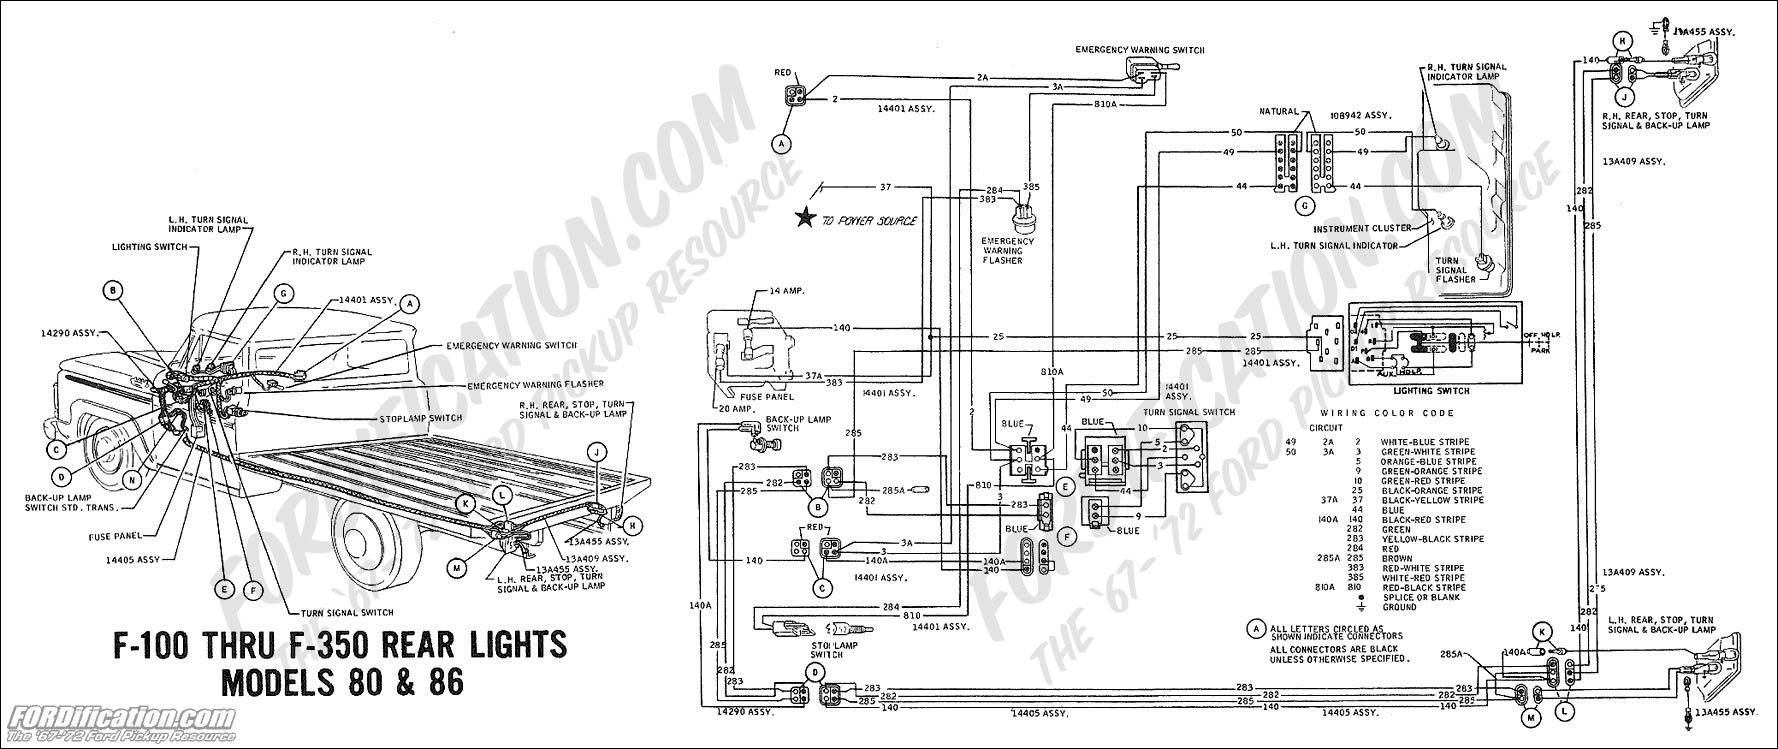 Electrical Wiring Diagram Ford F 350 Diagrams Schematics Ge Motor 5kcr49sn2137x Truck Technical Drawings And Section H Rh Fordification Com 1991